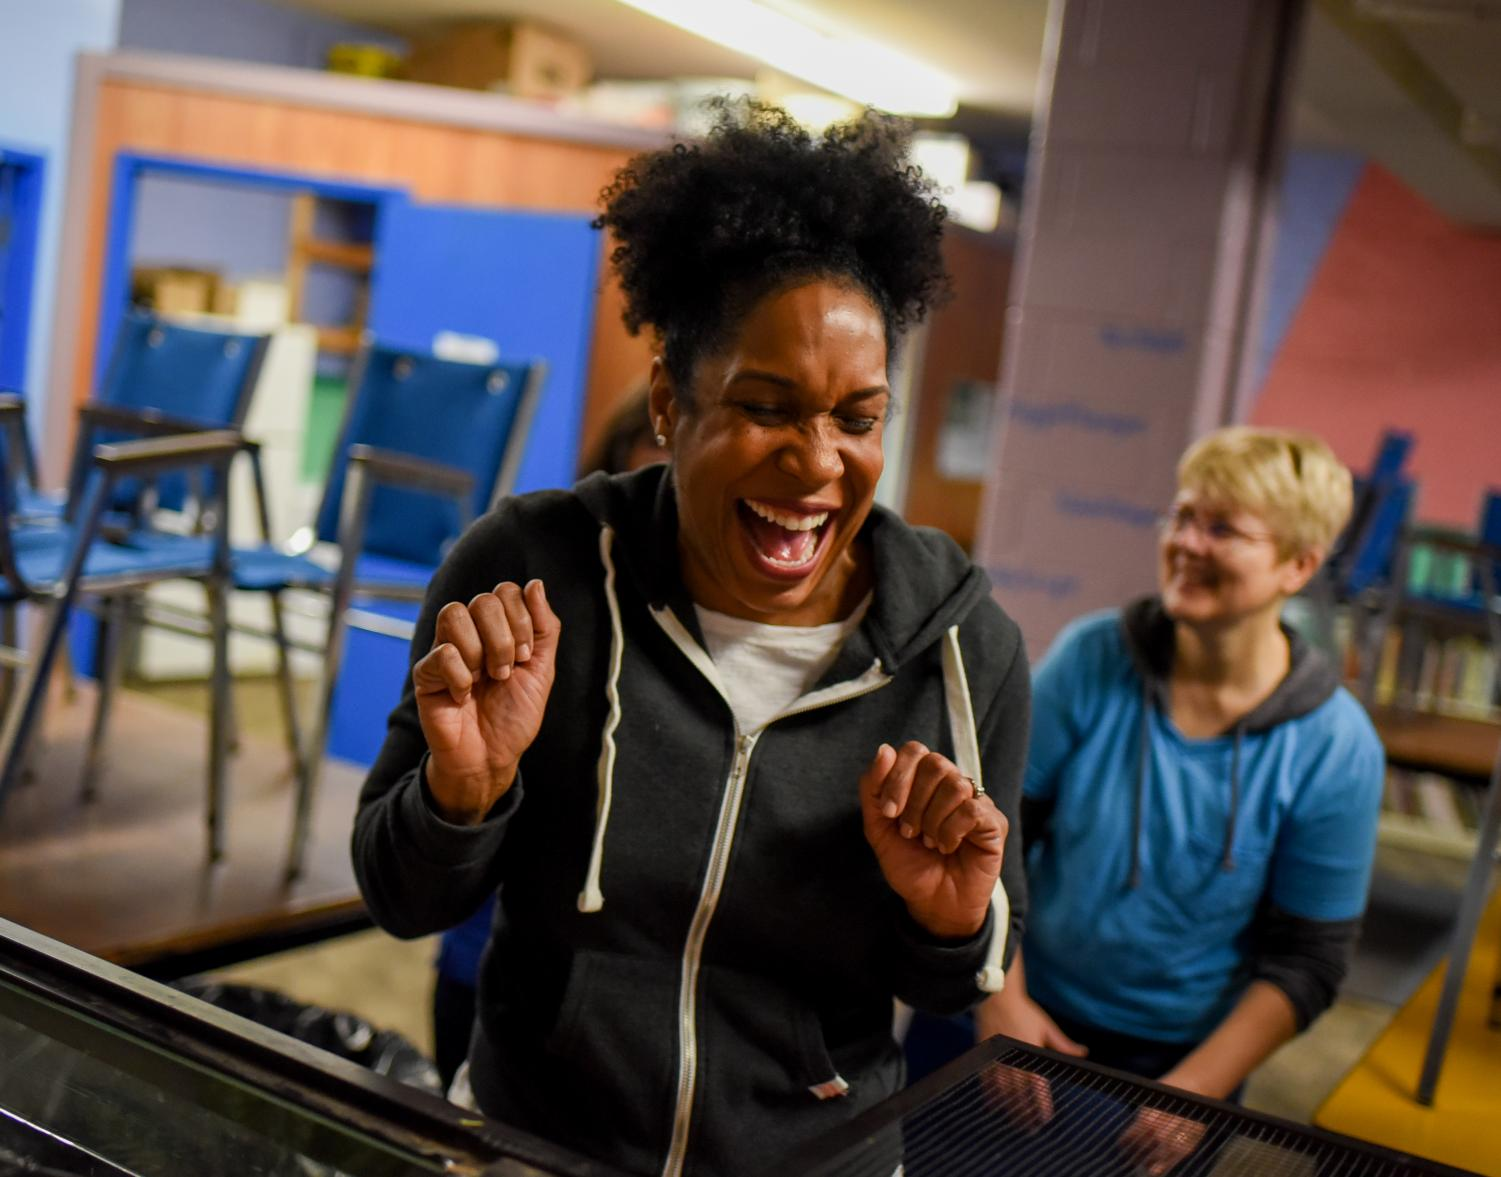 Juliana Stratton, Illinois Lt.Governor-elect, reacts after feeding a bearded dragon on Saturday, Jan. 12, 2019, during a community event at the Boys & Girls Club in Carbondale, Illinois. The event kicked off a statewide day of service held by Pritzker-Stratton Inaugural Committee.